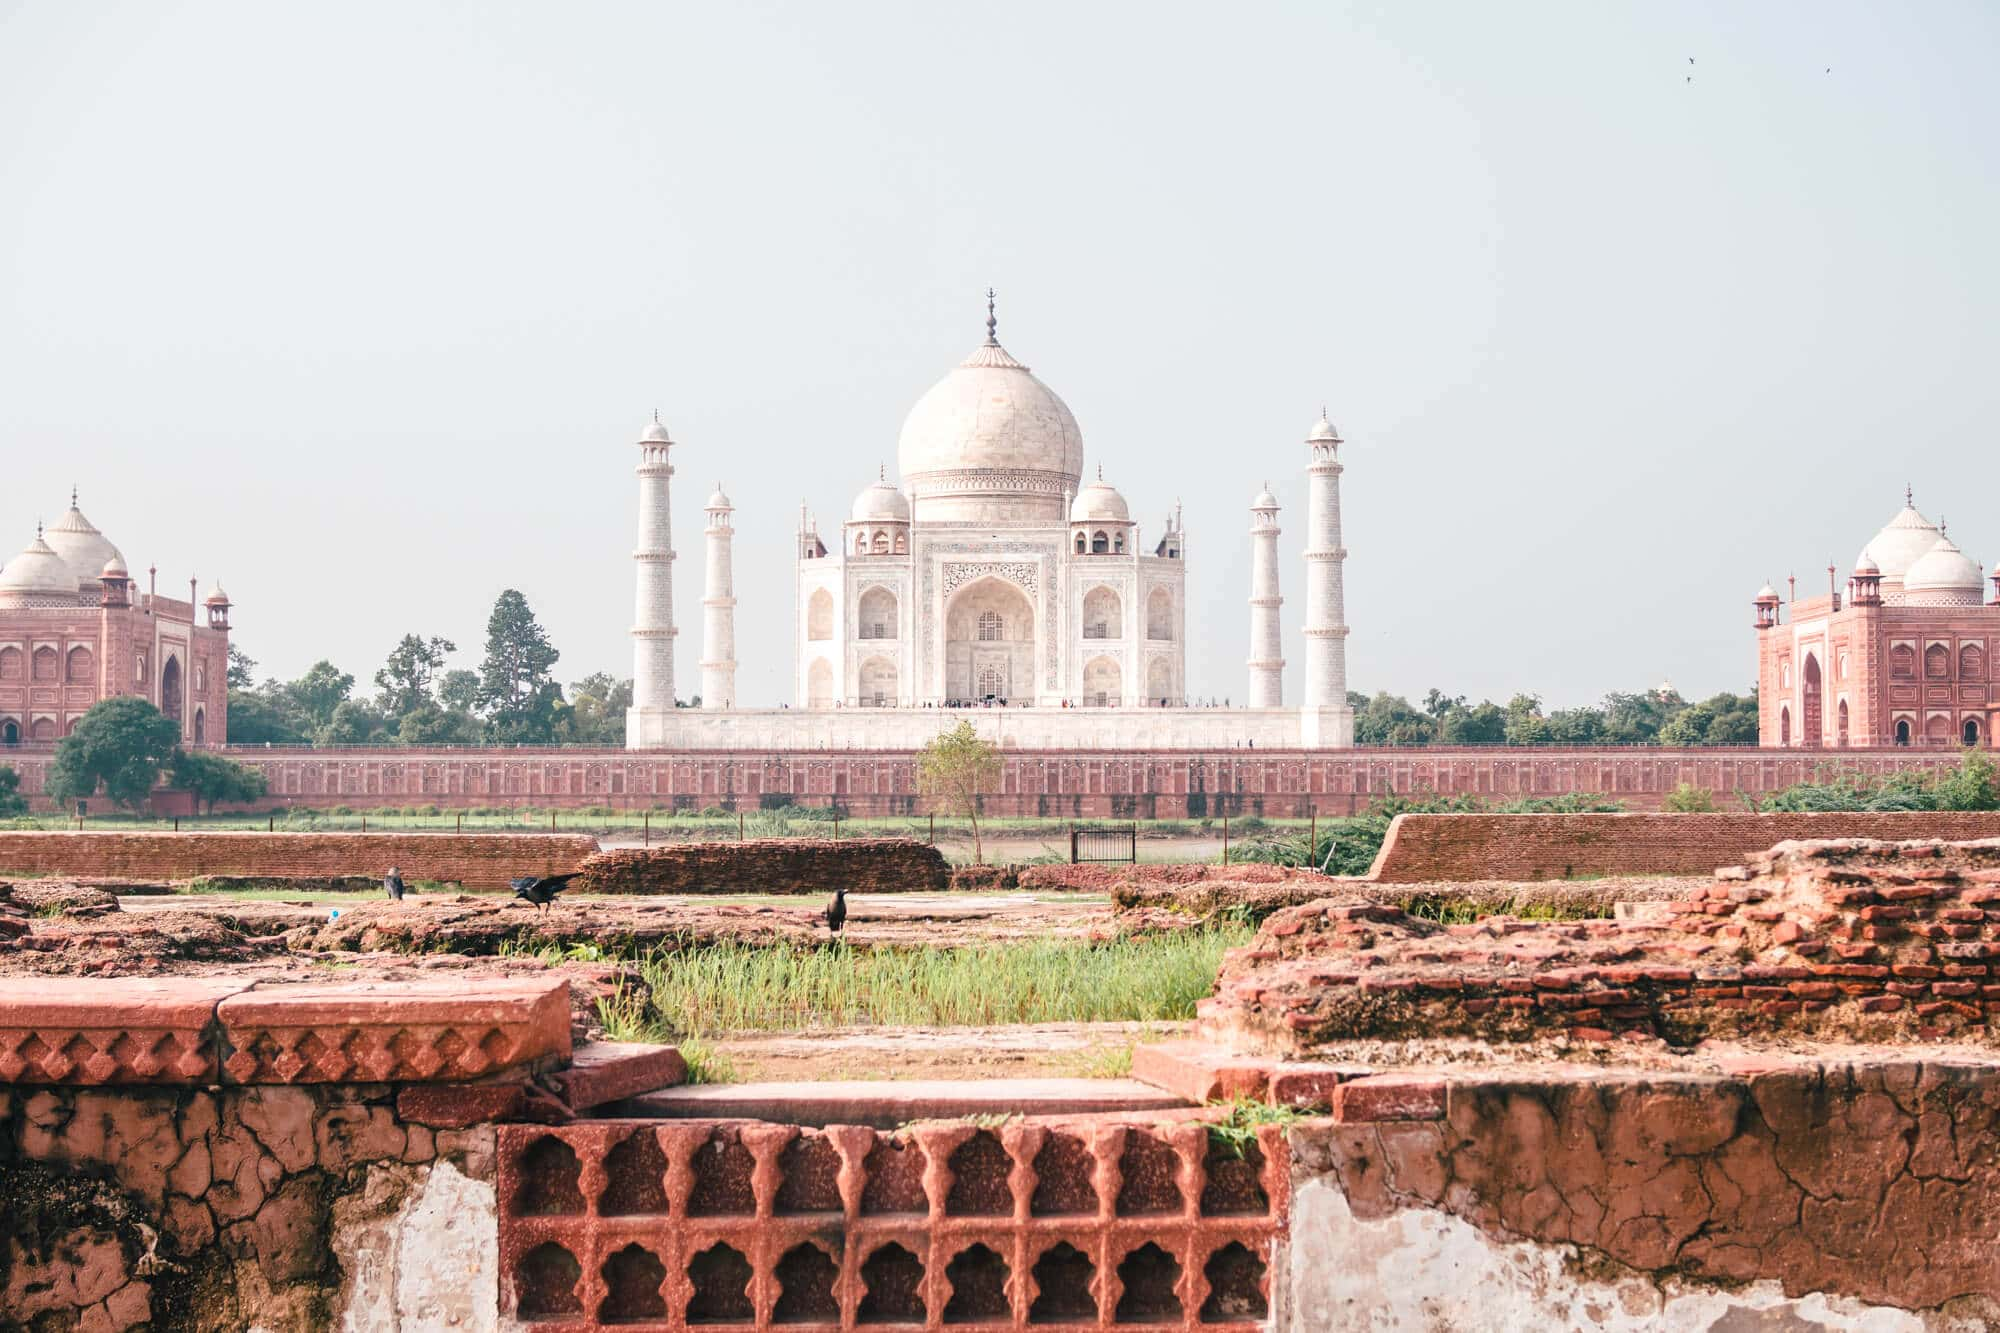 Mehtab Bagh or Moonlight Garden is the best place to view the Taj Mahal in all of Agra #TajMahal #Agra #India